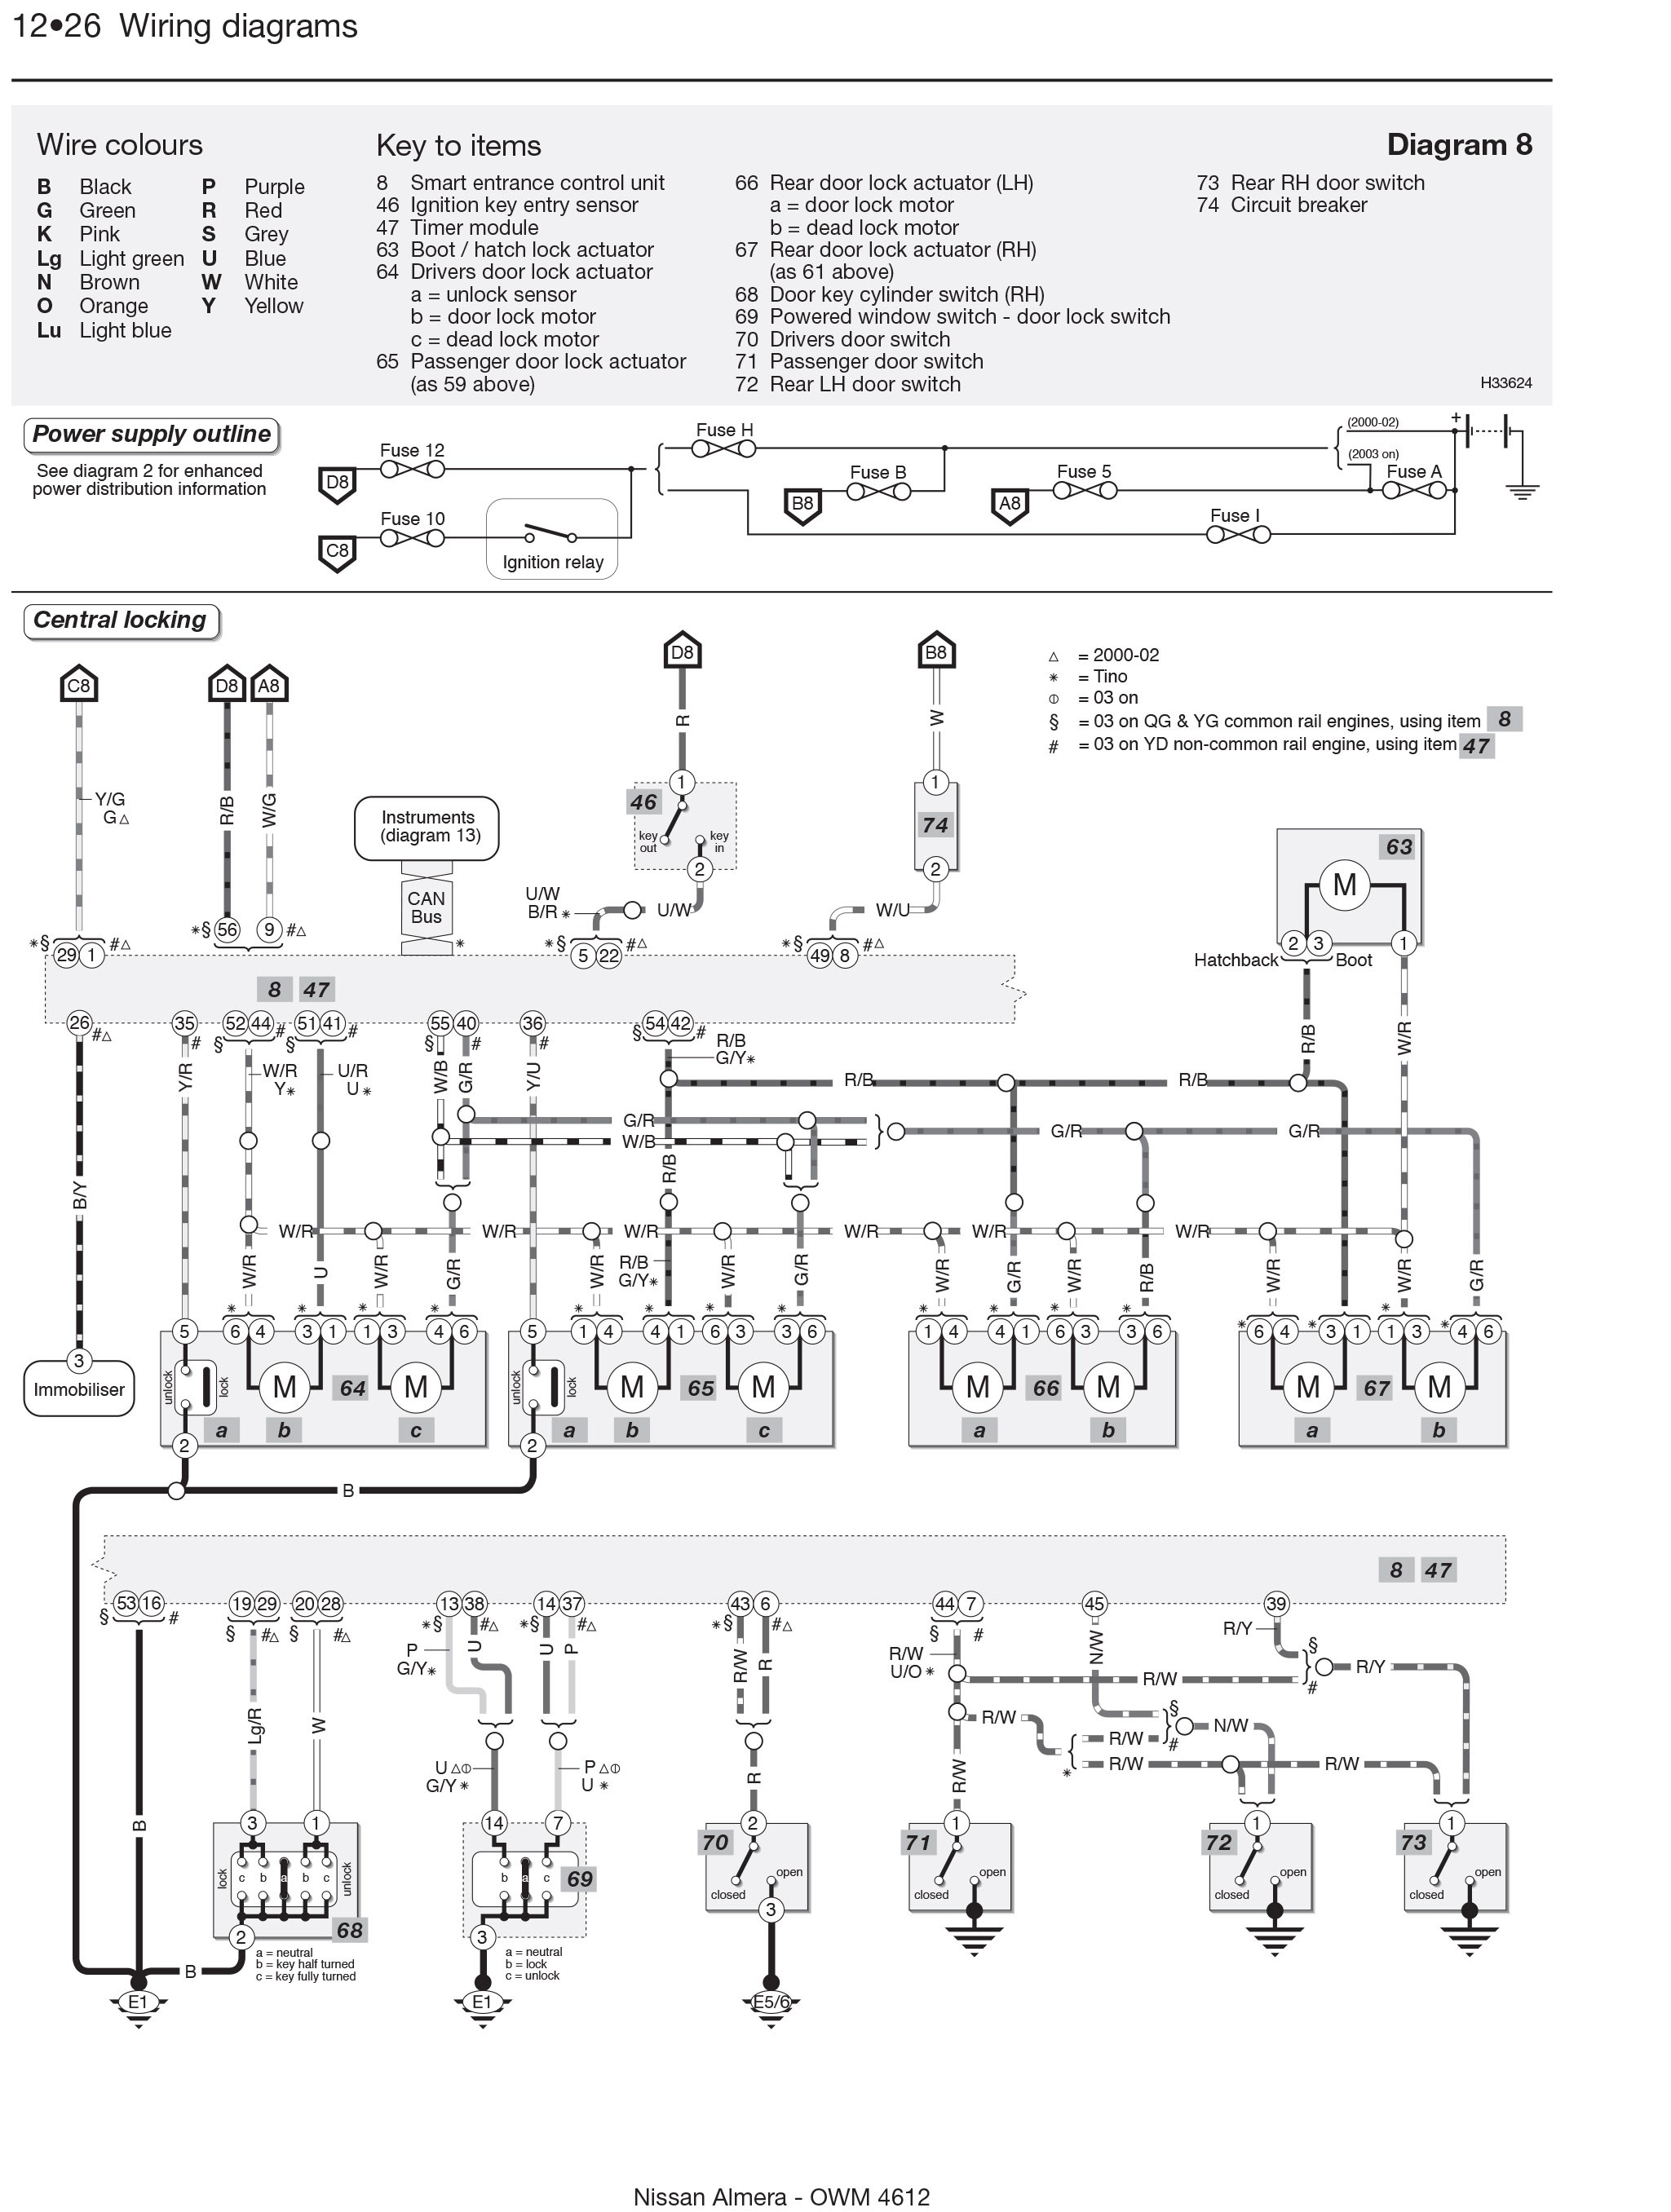 Nissan almera engine diagram nissan almera engine diagram nissan almera tino petrol feb 00 07 of